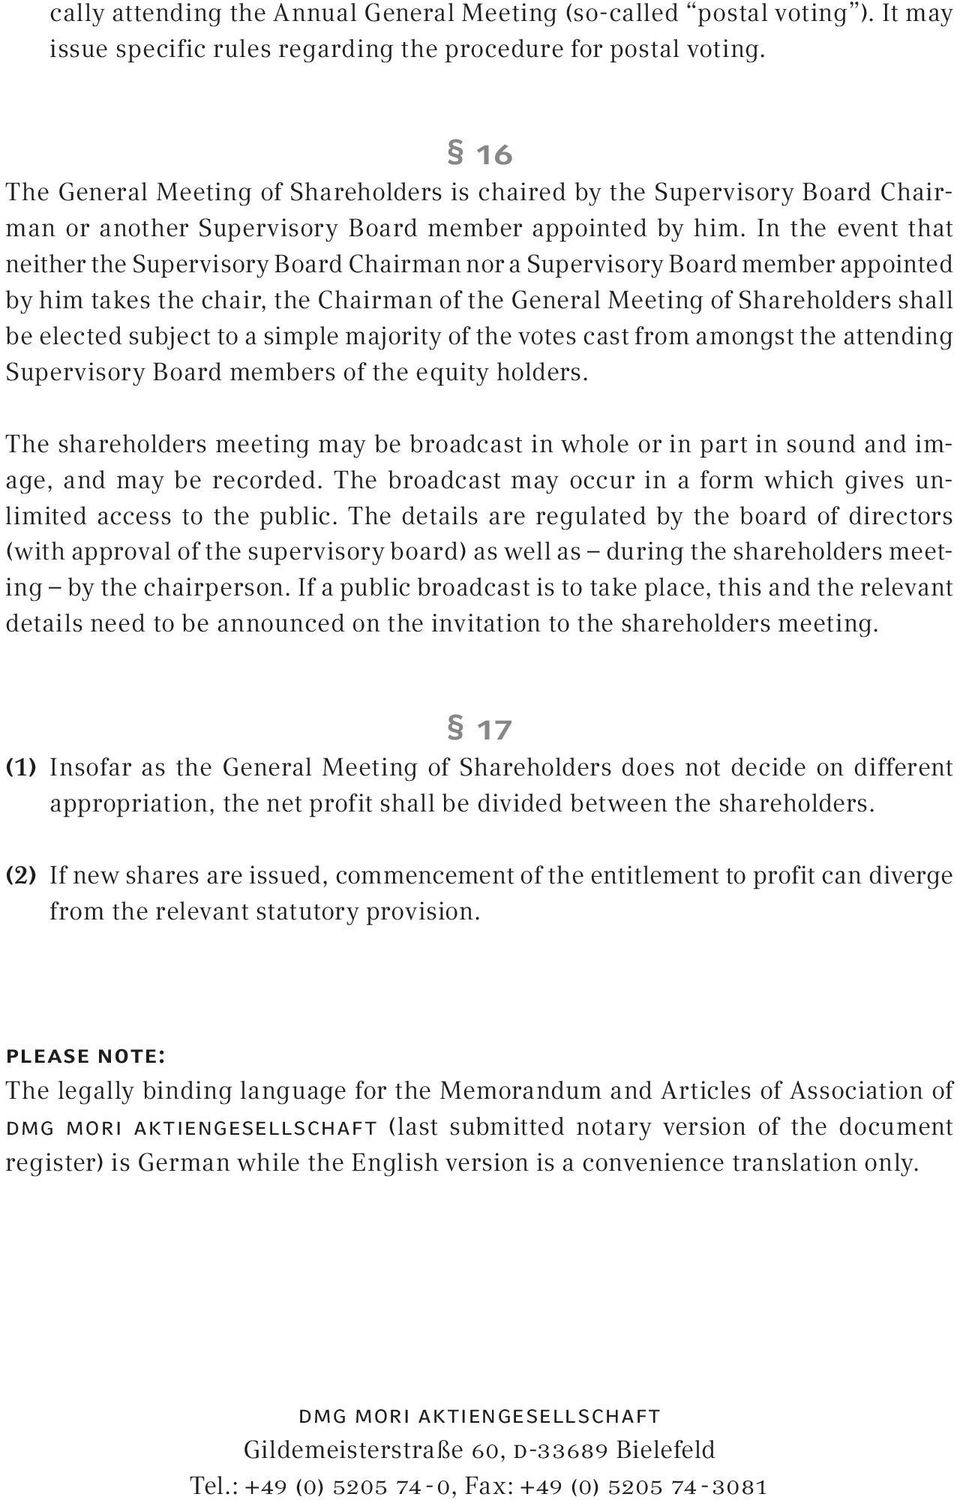 In the event that neither the Supervisory Board Chairman nor a Supervisory Board member appointed by him takes the chair, the Chairman of the General Meeting of Shareholders shall be elected subject